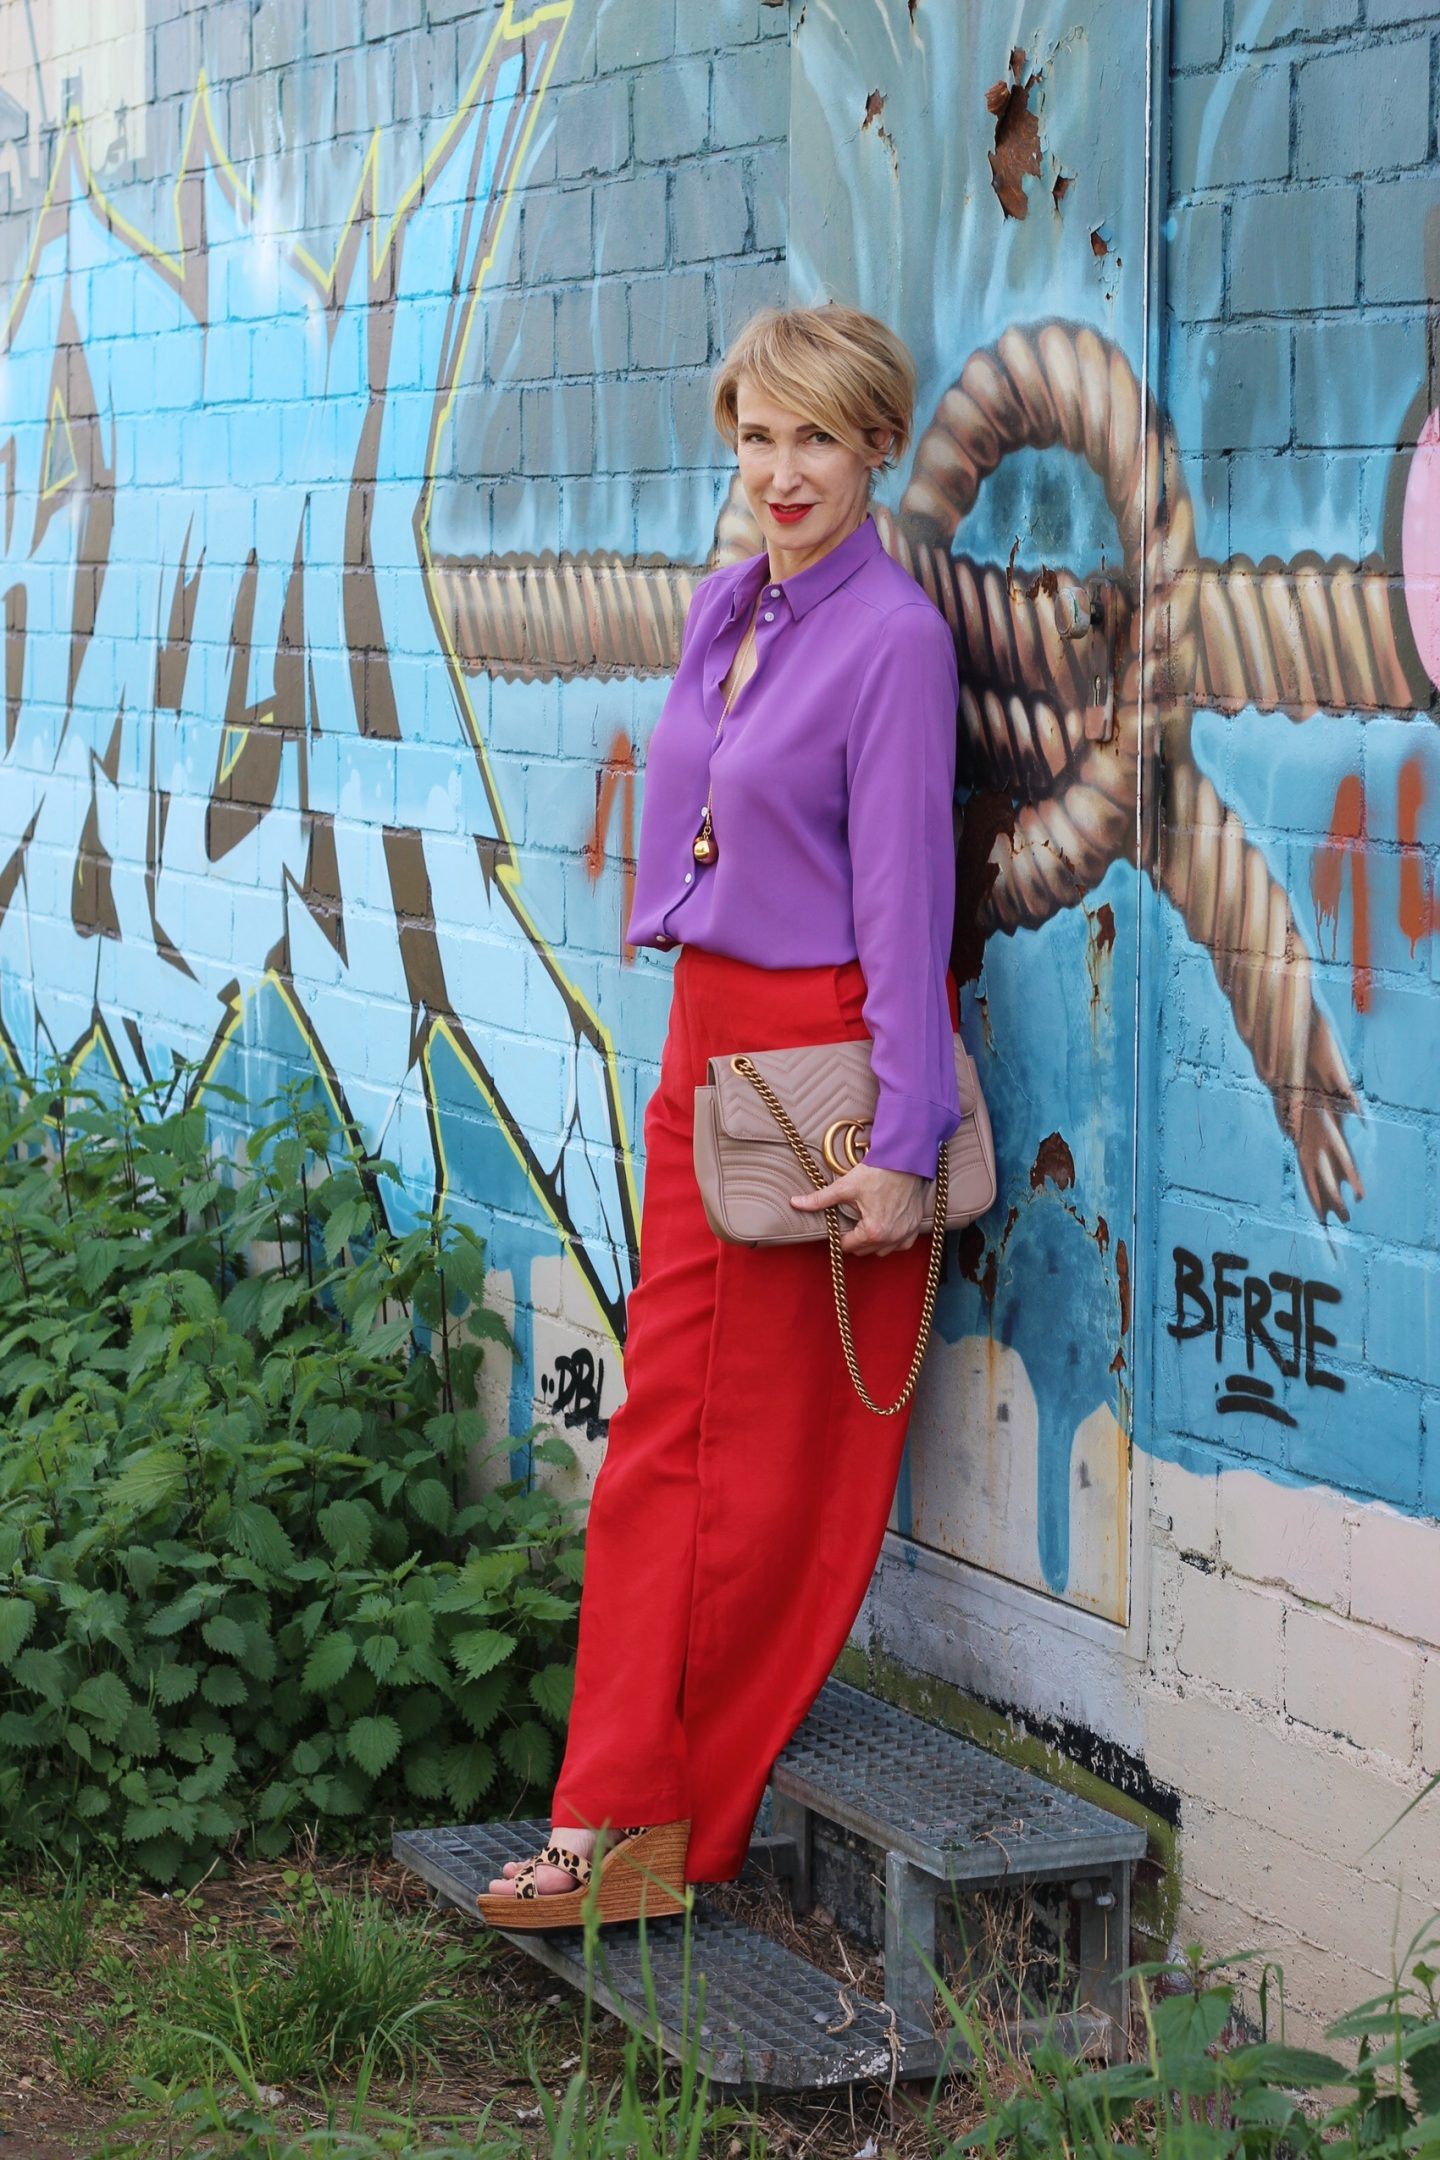 Color-Blocking – Lila mit Rot kombiniert